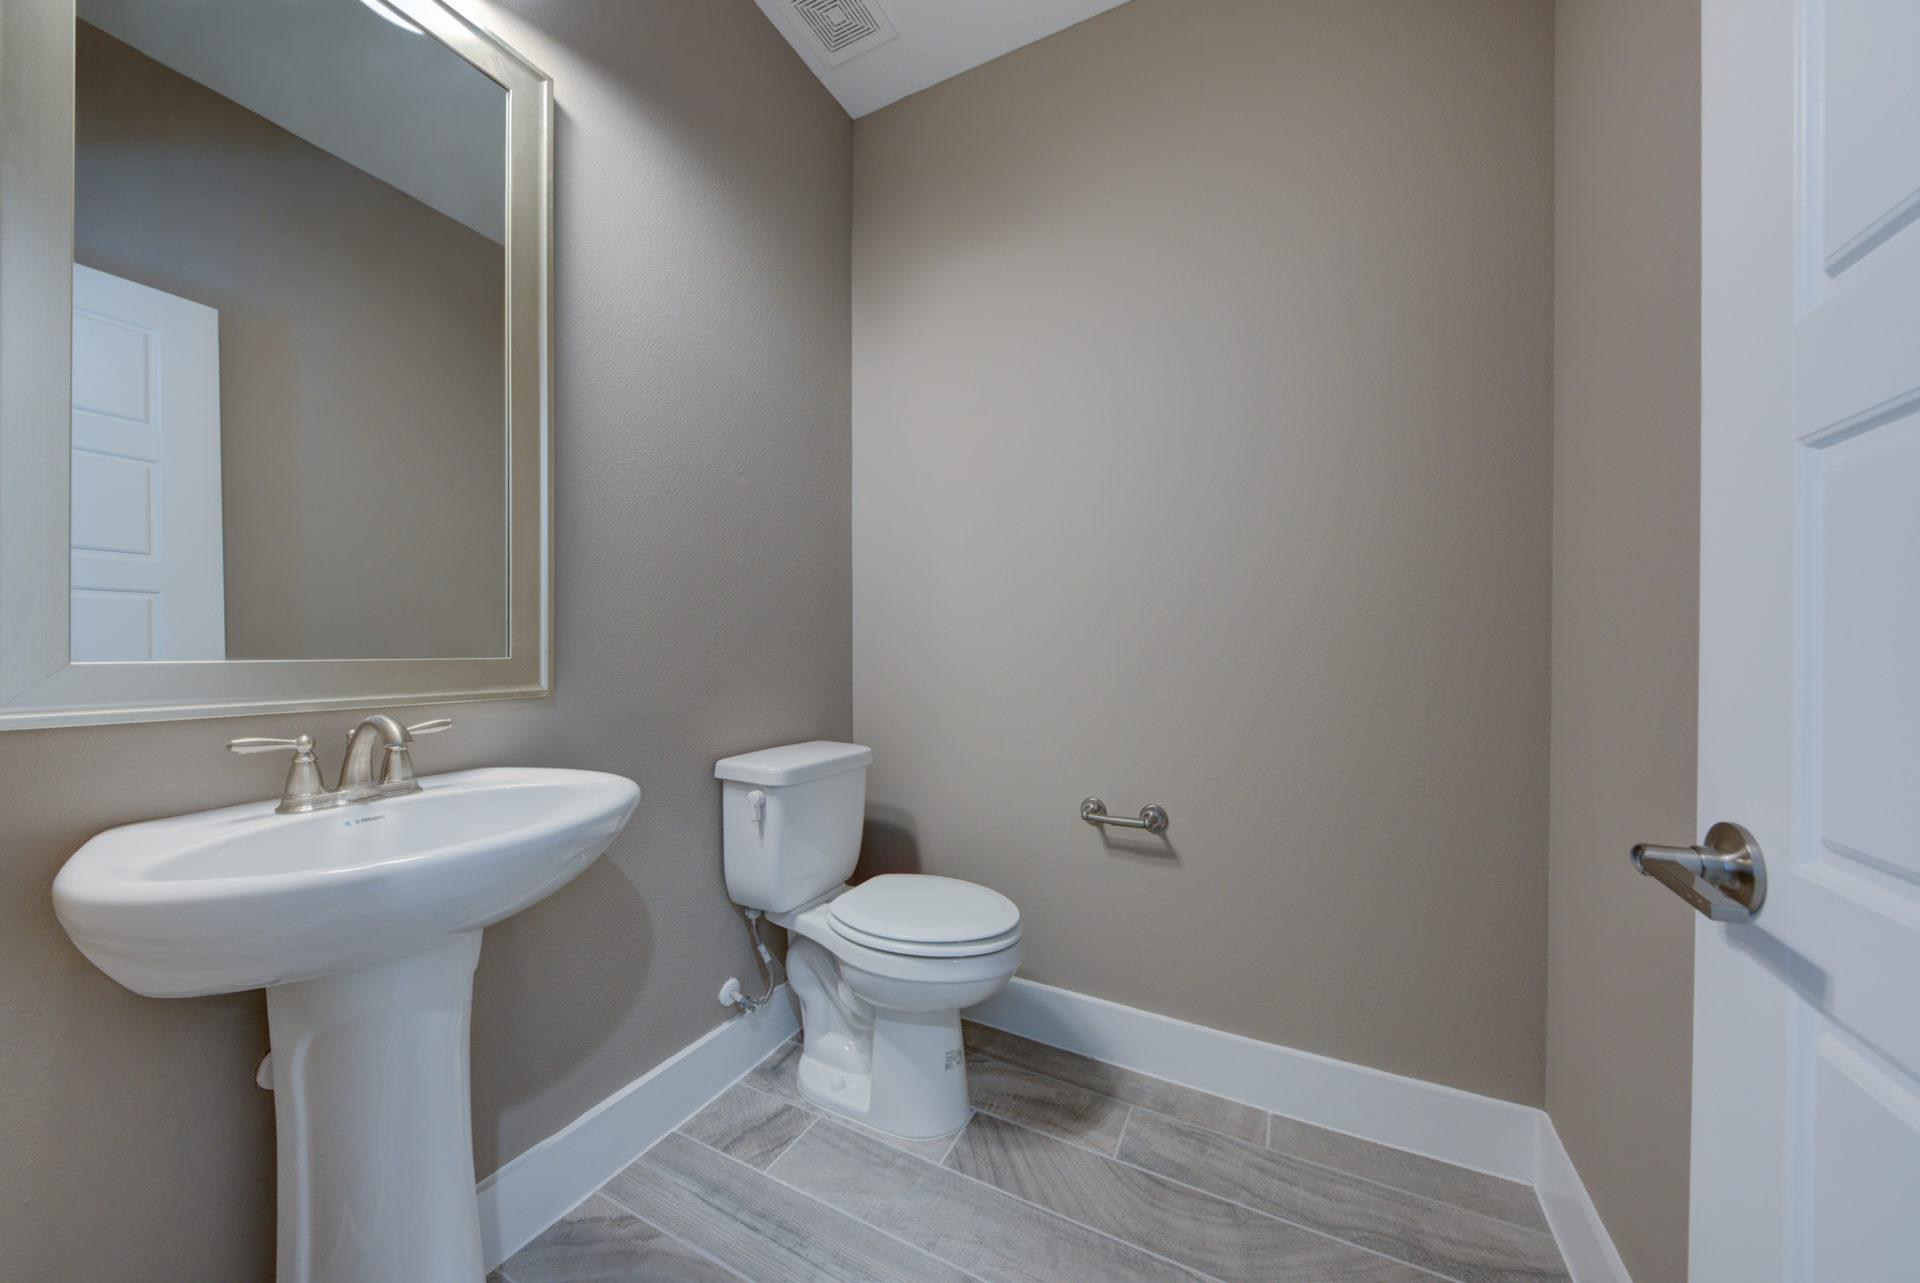 Bathroom featured in the Leon Creek By Casina Creek Homes, LLC in San Antonio, TX